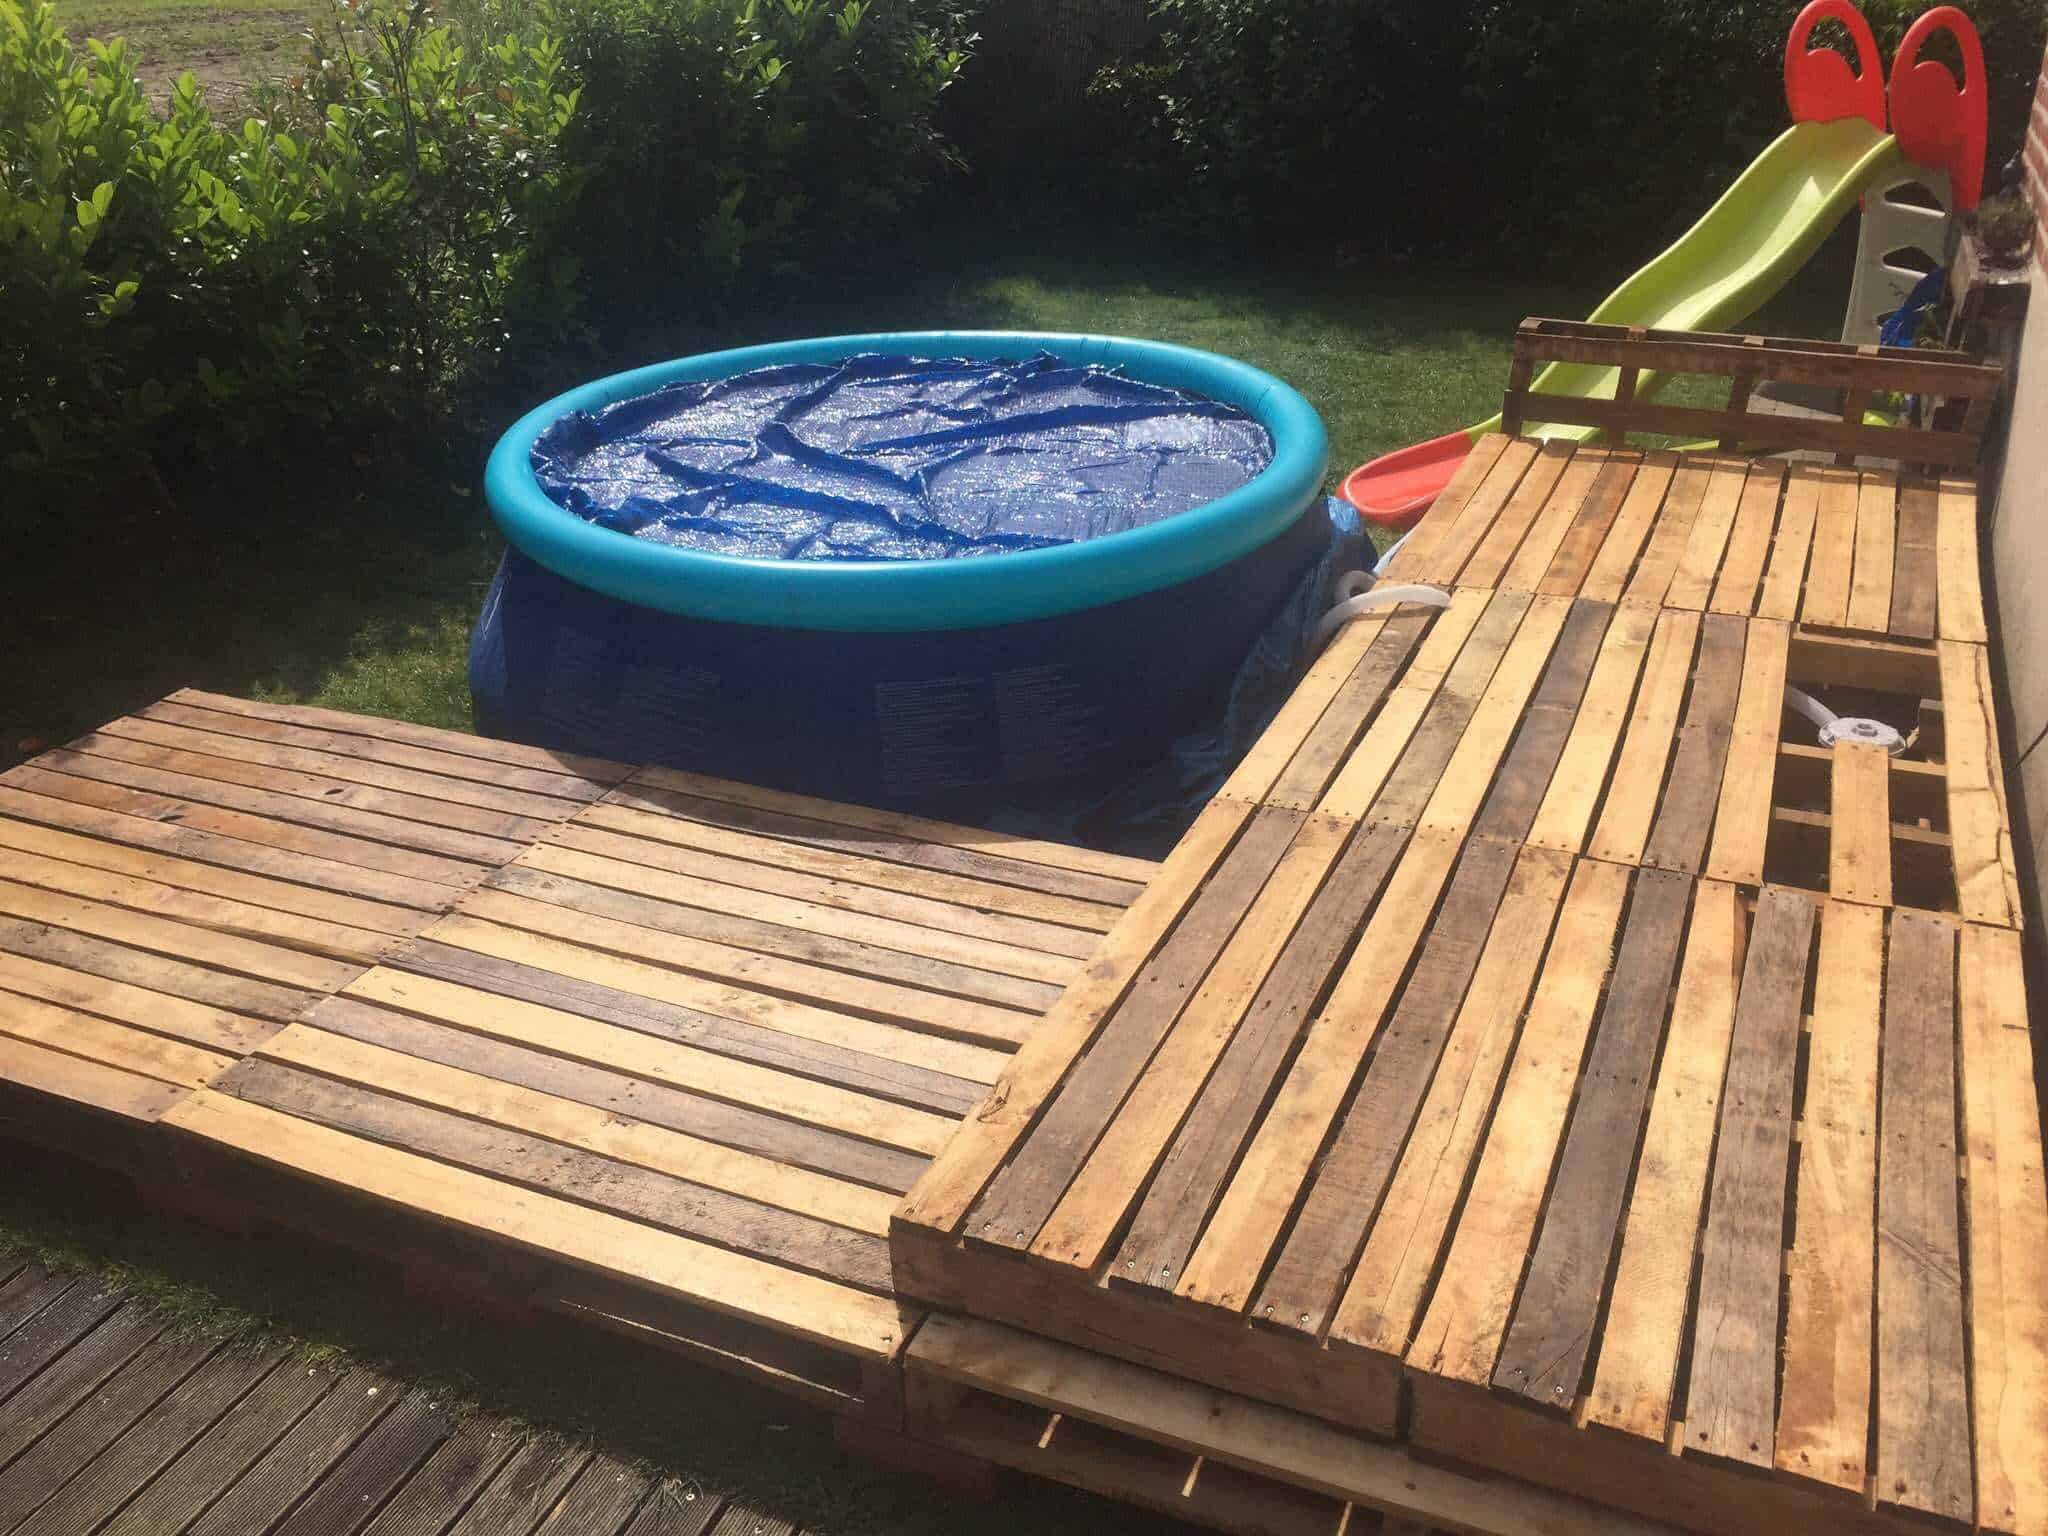 pallet ceiling ideas - Swimming Pool Pallet Deck • Pallet Ideas • 1001 Pallets